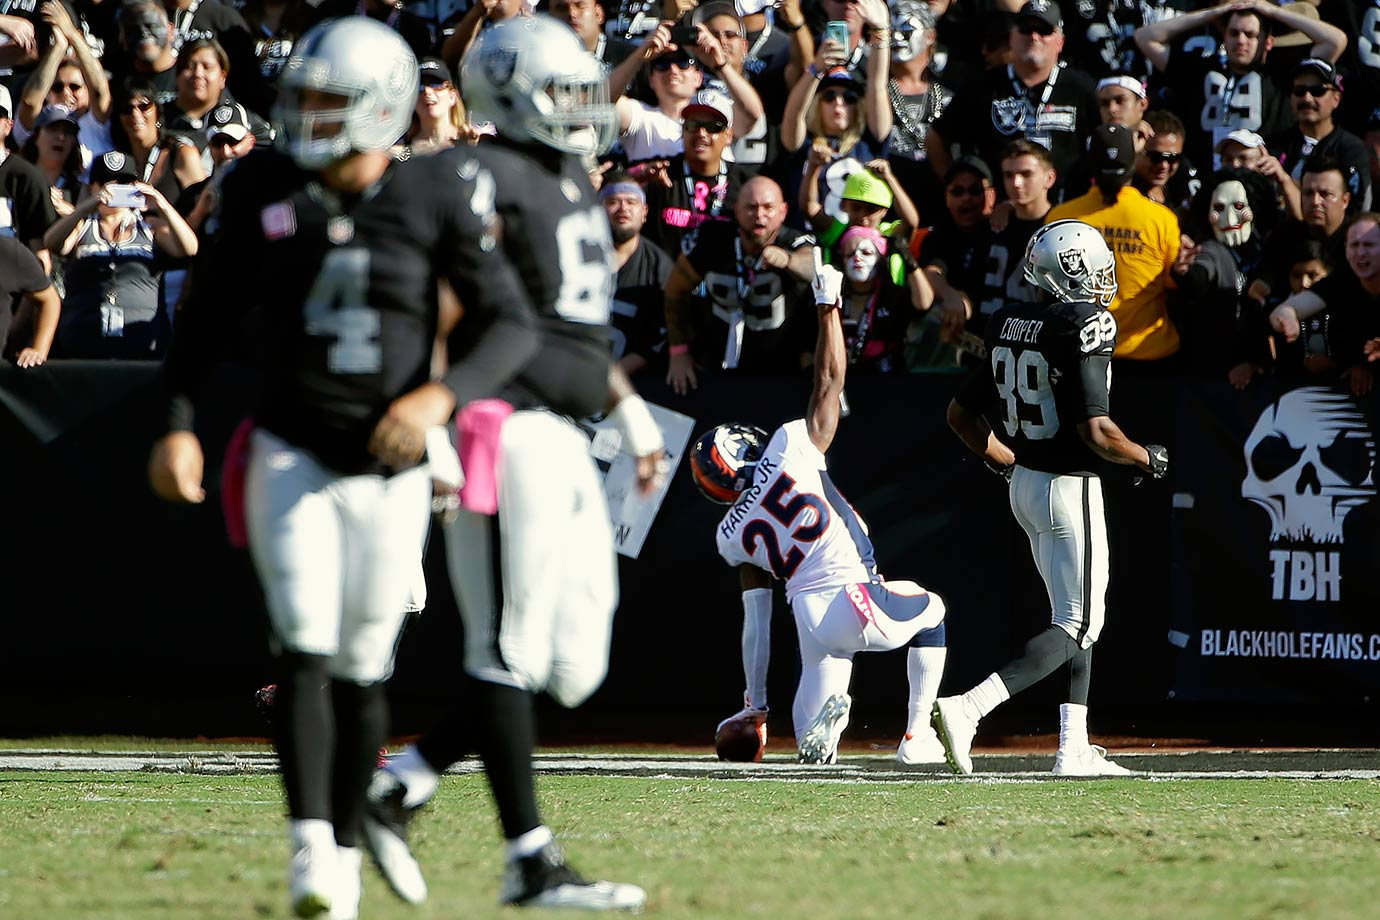 Once again Manning threw two interceptions and the defense had to preserve the win over the Oakland Raiders. McManus hit three field goals, giving Denver a 9-7 lead in the fourth quarter. With the Raiders driving, cornerback Chris Harris intercepted Derek Carr's pass and returned it 74 yards for a touchdown. Oakland managed to get a field goal, but nothing else, and the Broncos won 16-10.